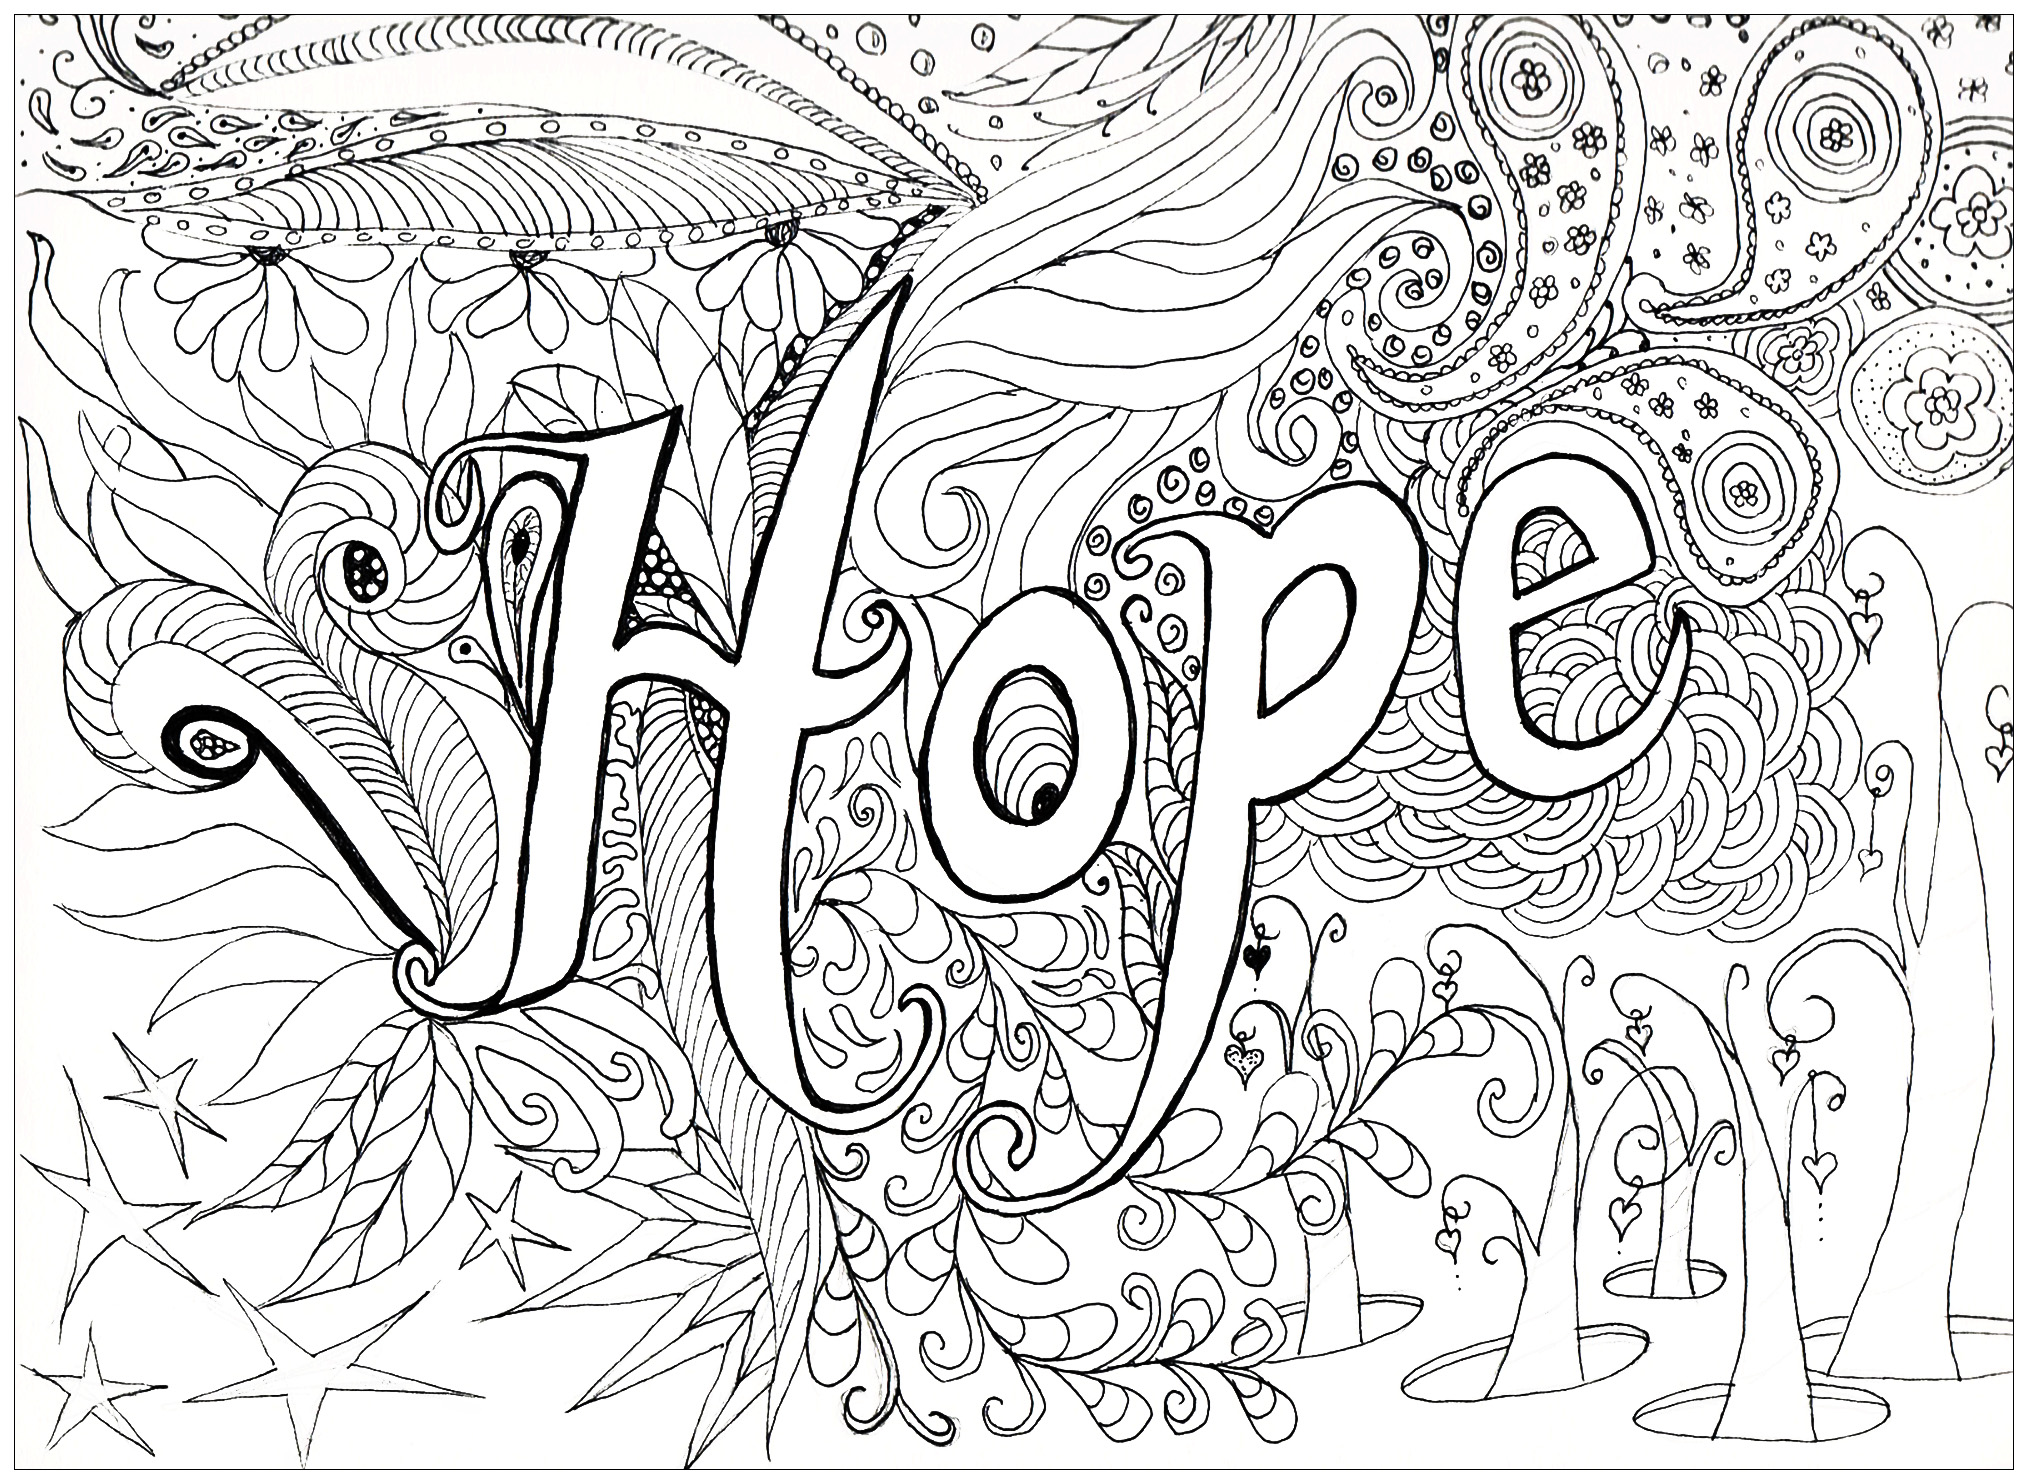 pages hope zen and anti stress coloring pages for adults